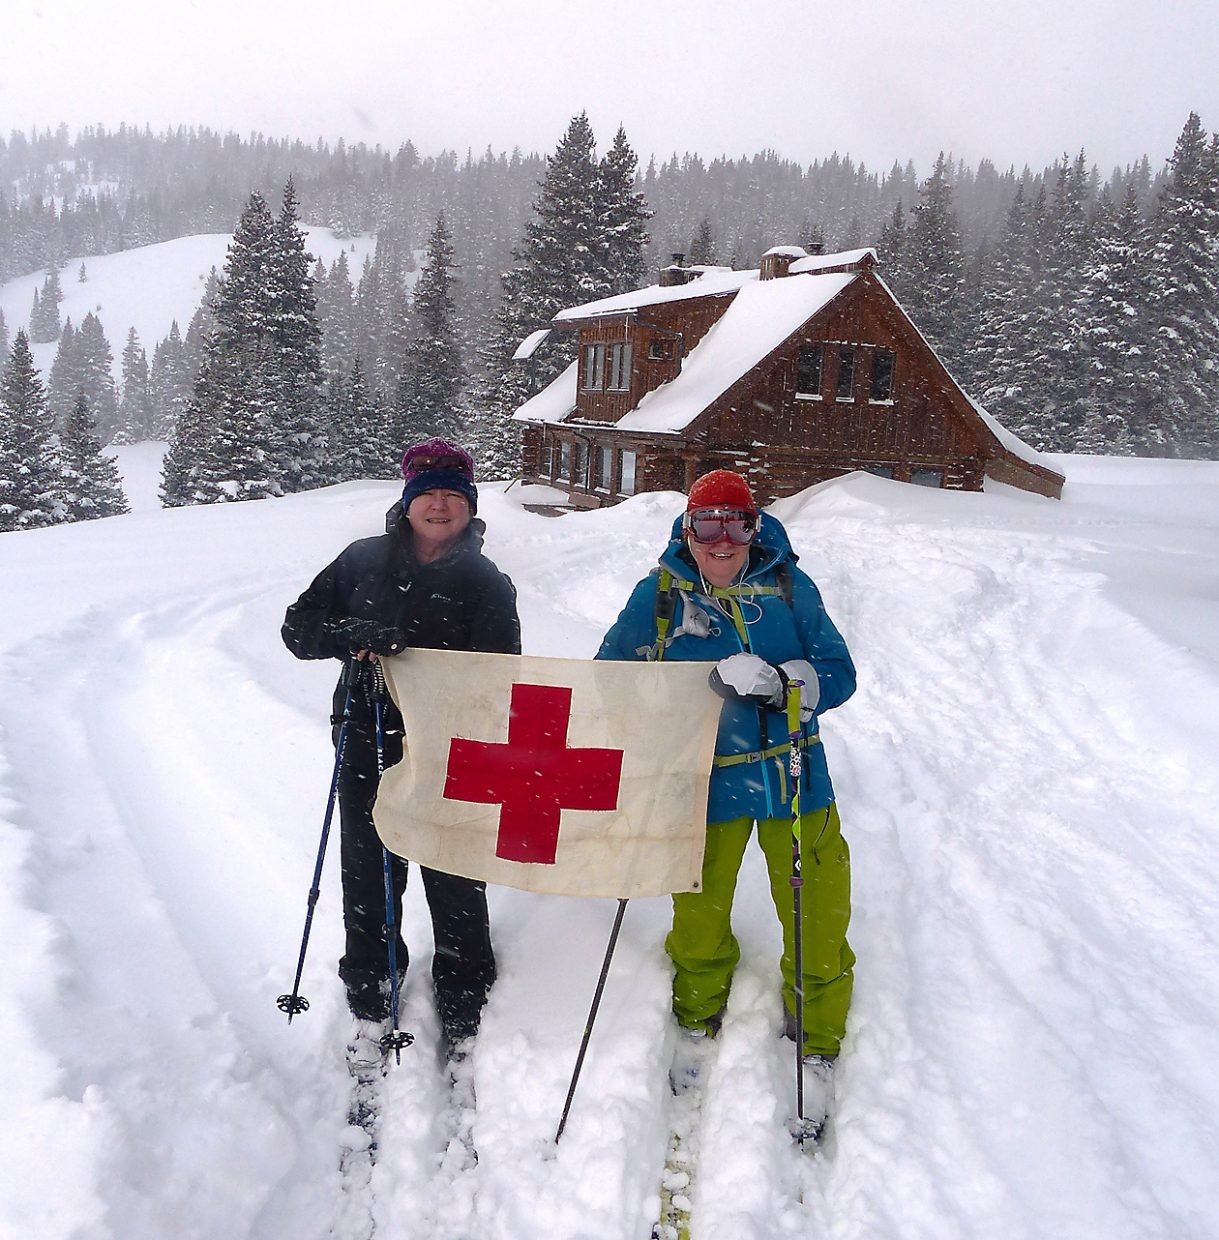 Nancy Kramer, left, and Deb Proper, of Steamboat Springs made their last trip to the Tenth Mountain Division Hut north of Leadville in January after 30 years of backcountry hut trips. The flag is symbolic of Kramer's father, Bill Robertson's, service in Italy in World War II as a medic in the Tenth Mountain Division.